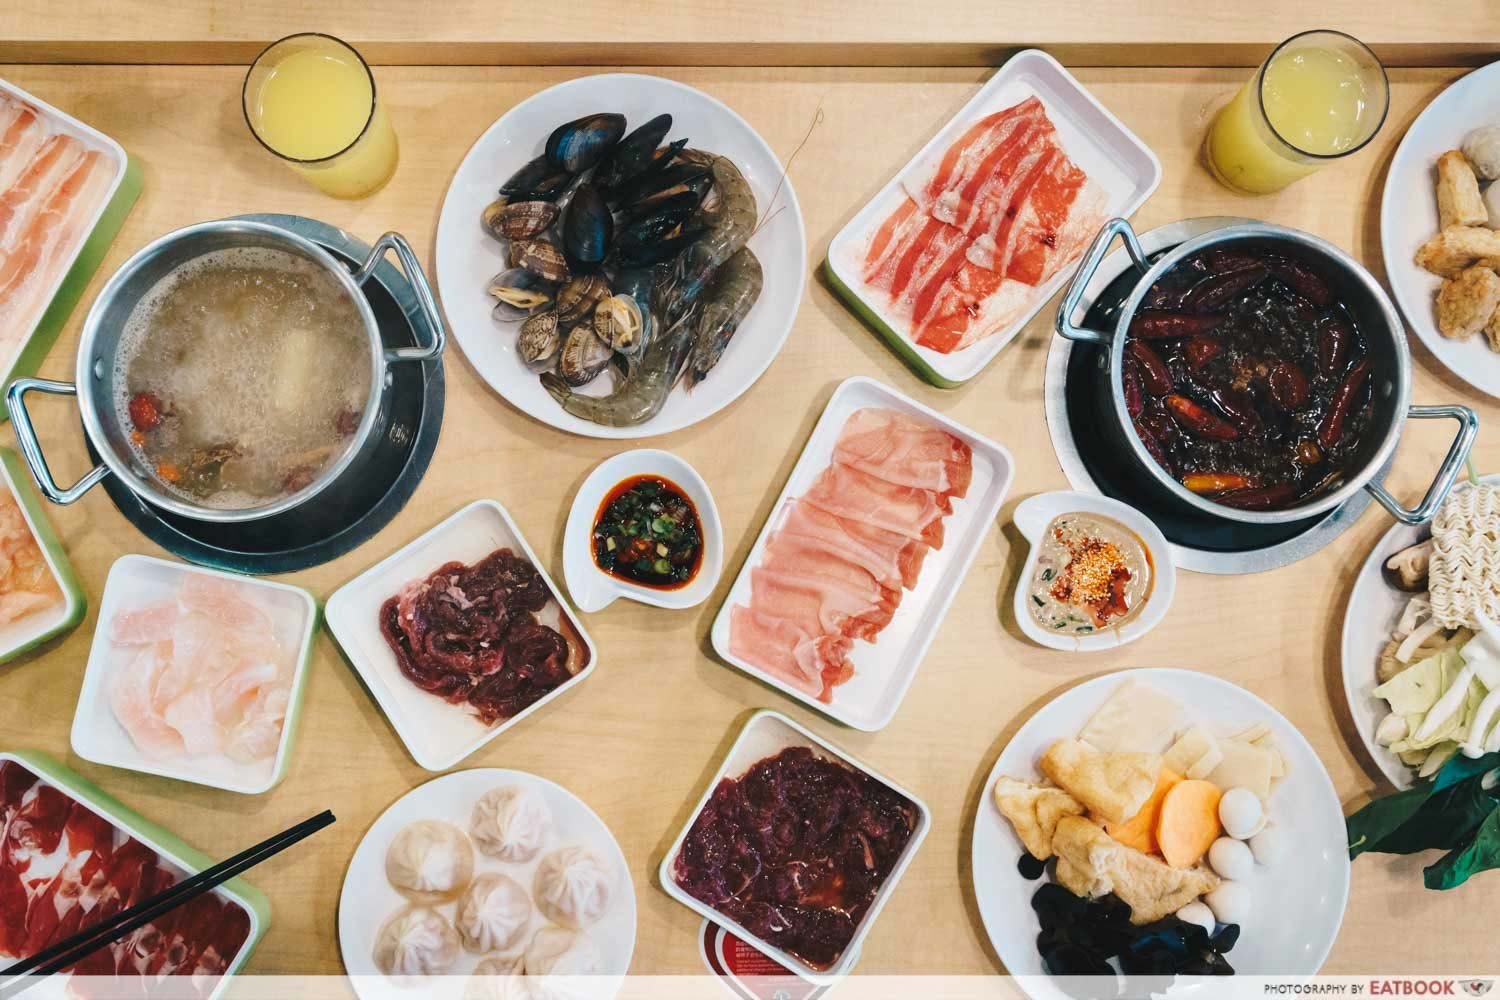 New Restaurant July - Xiao Cai Xiang Steamboat Buffet Selection